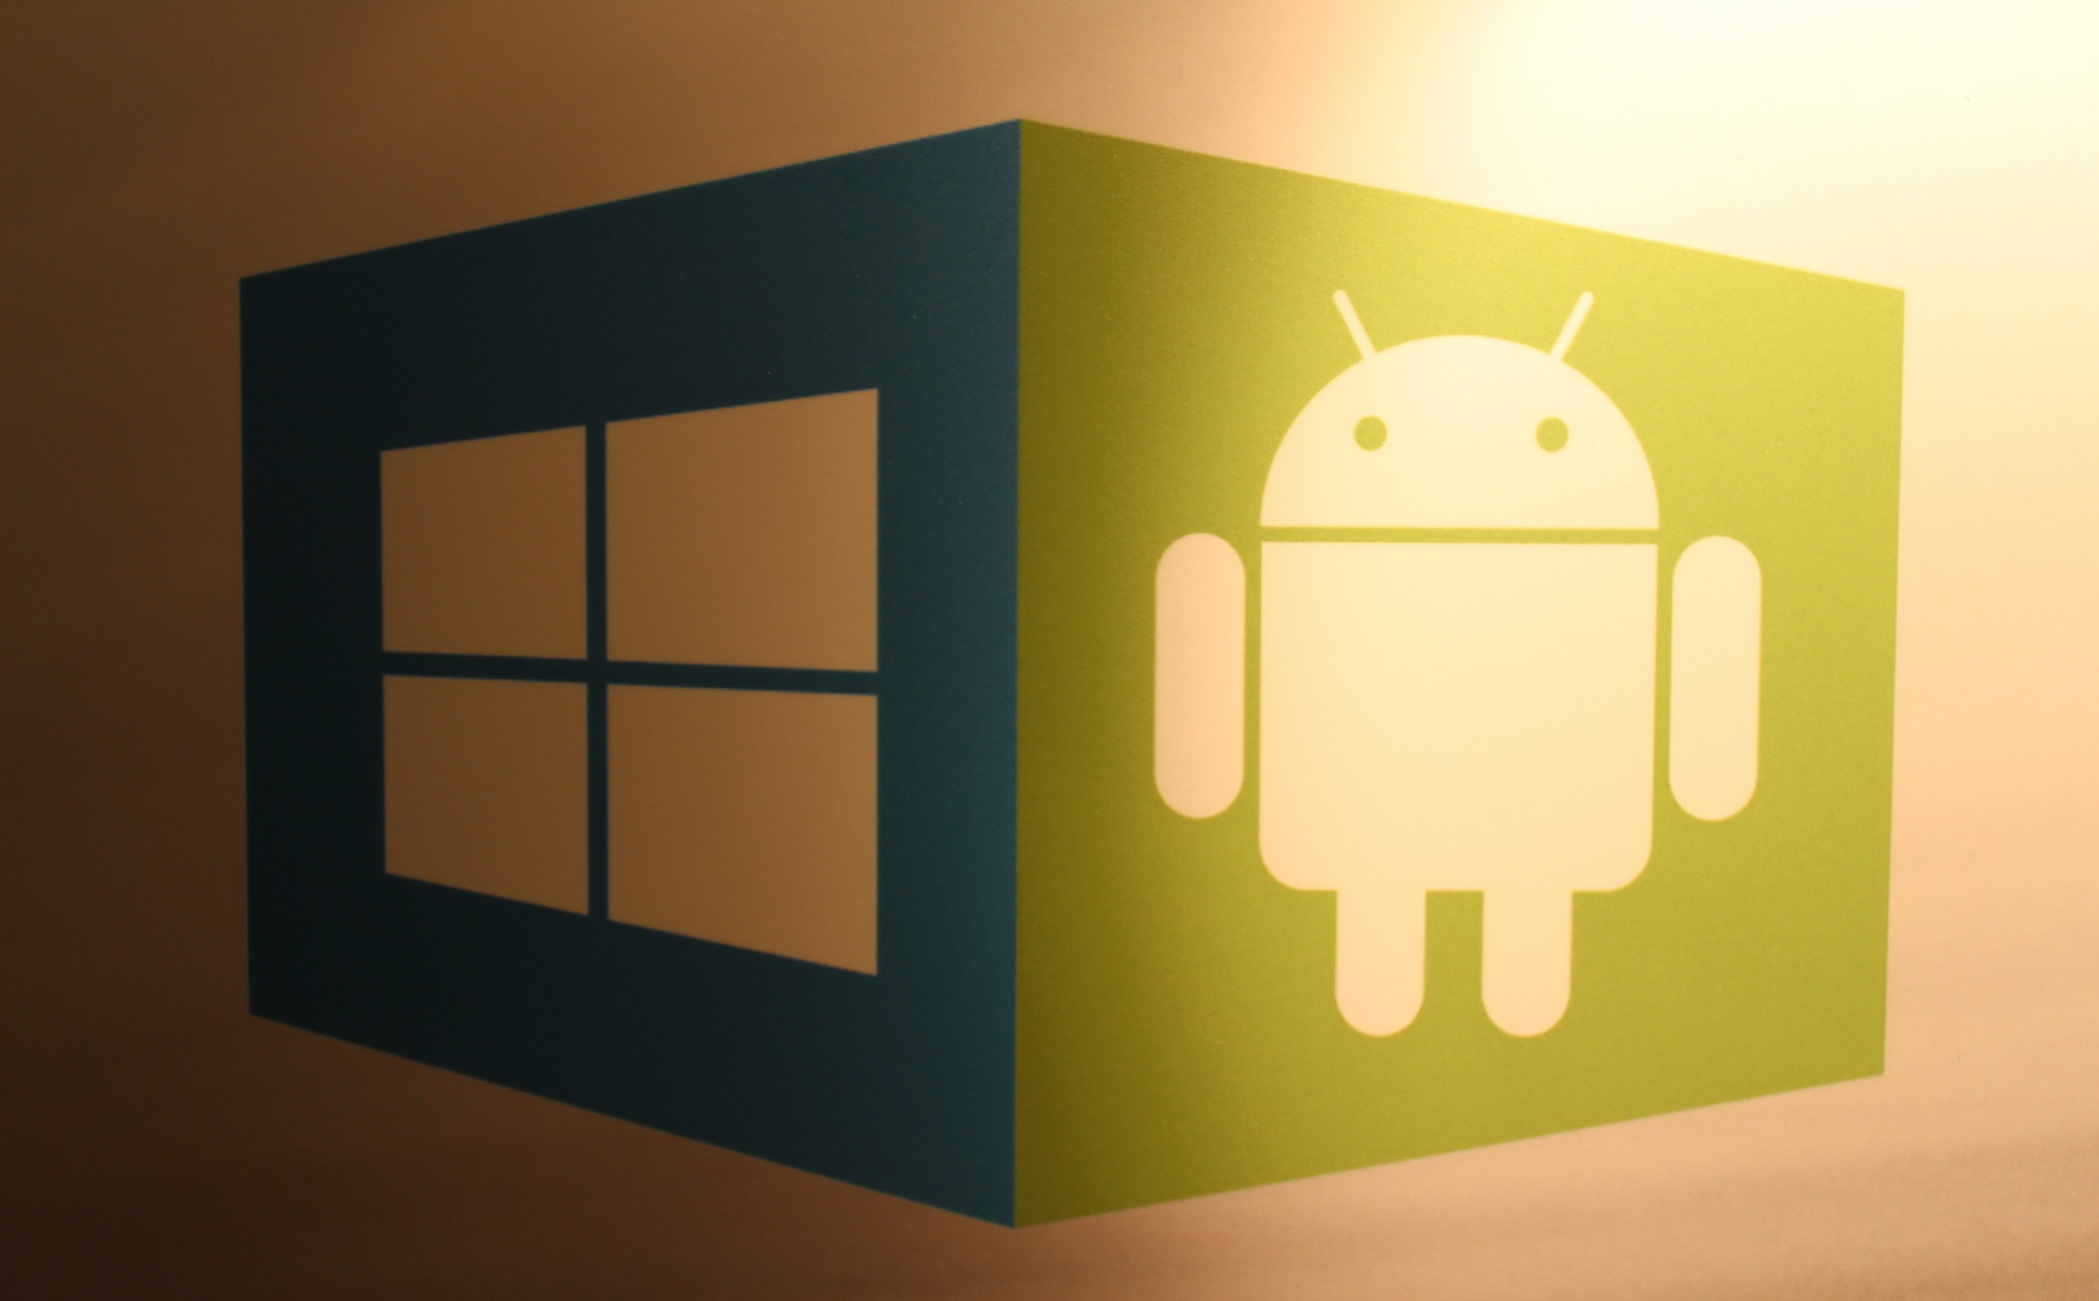 Phone Switch Windows Phone To Android make the switch from windows to android phone by asking important questions